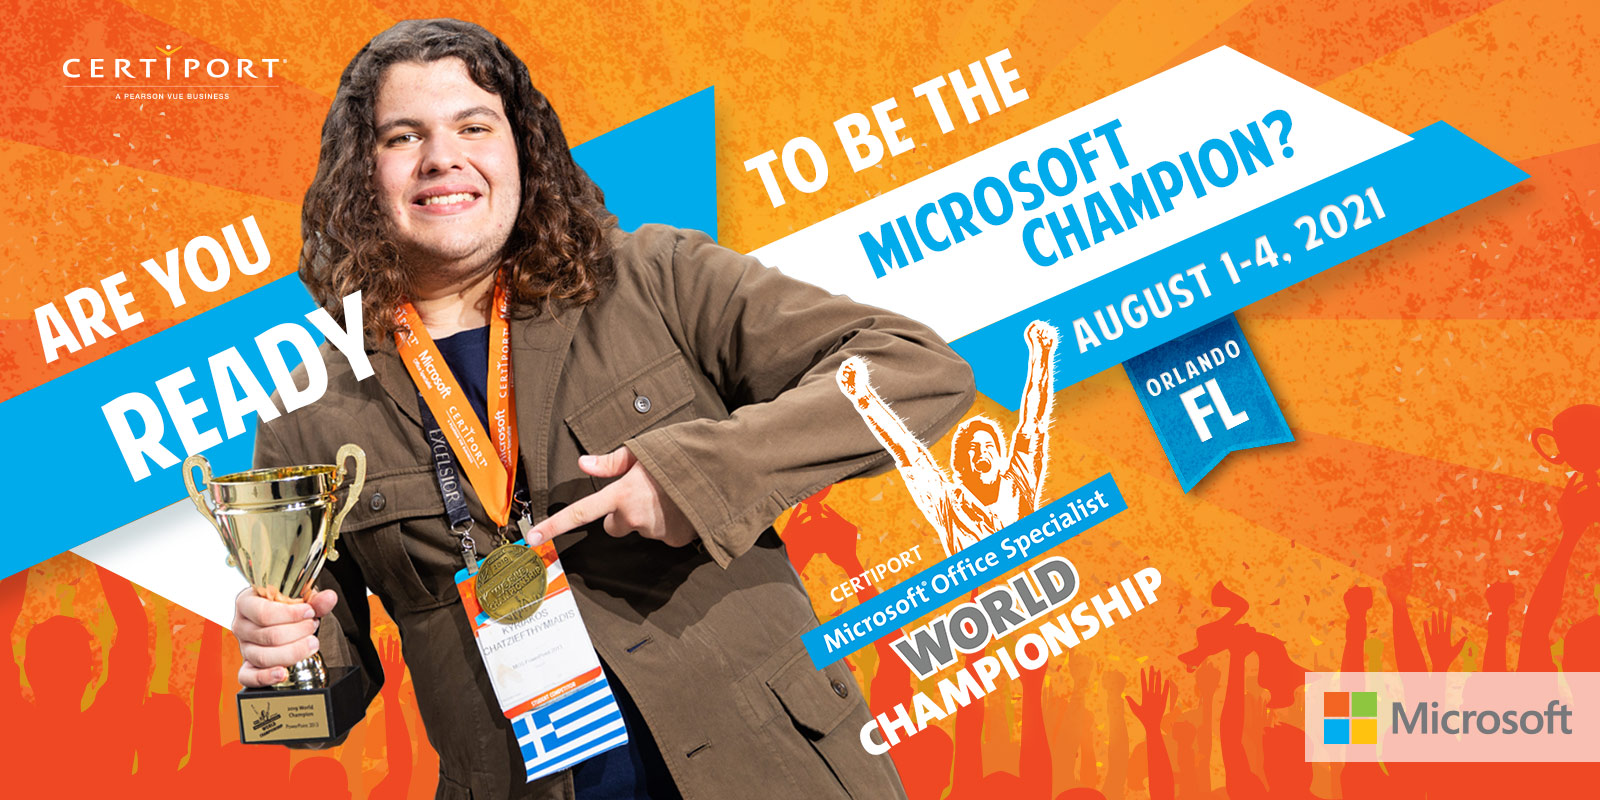 Microsoft Office Specialist World Championship New York, New York